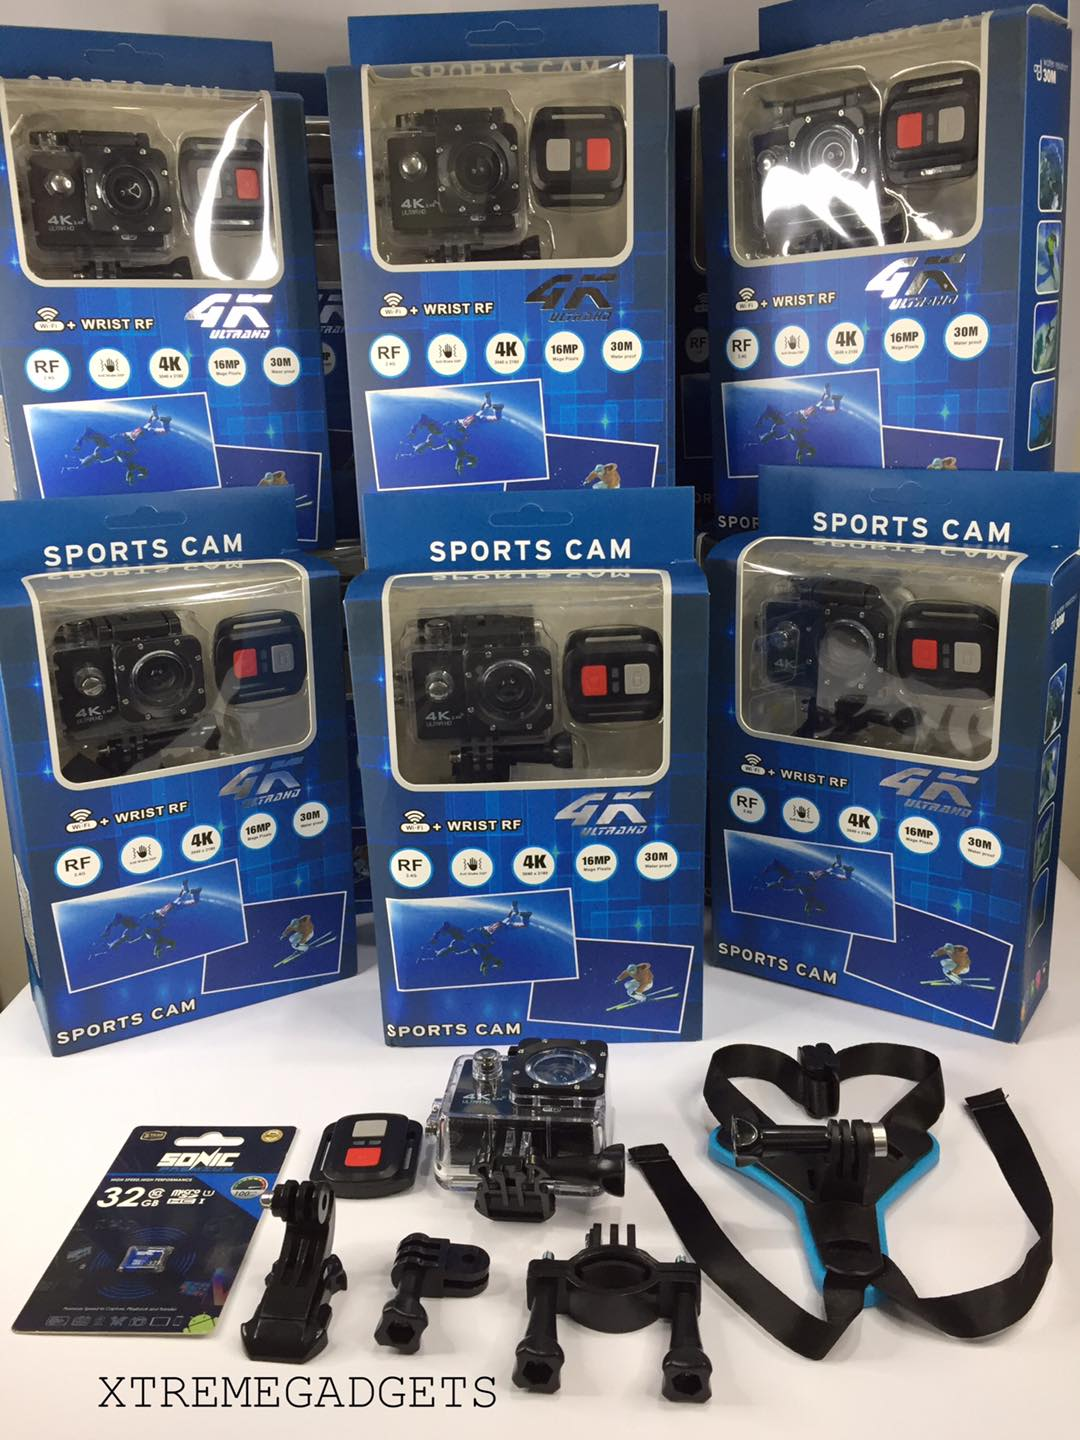 SPORTS CAM 4k Ultra HD SET